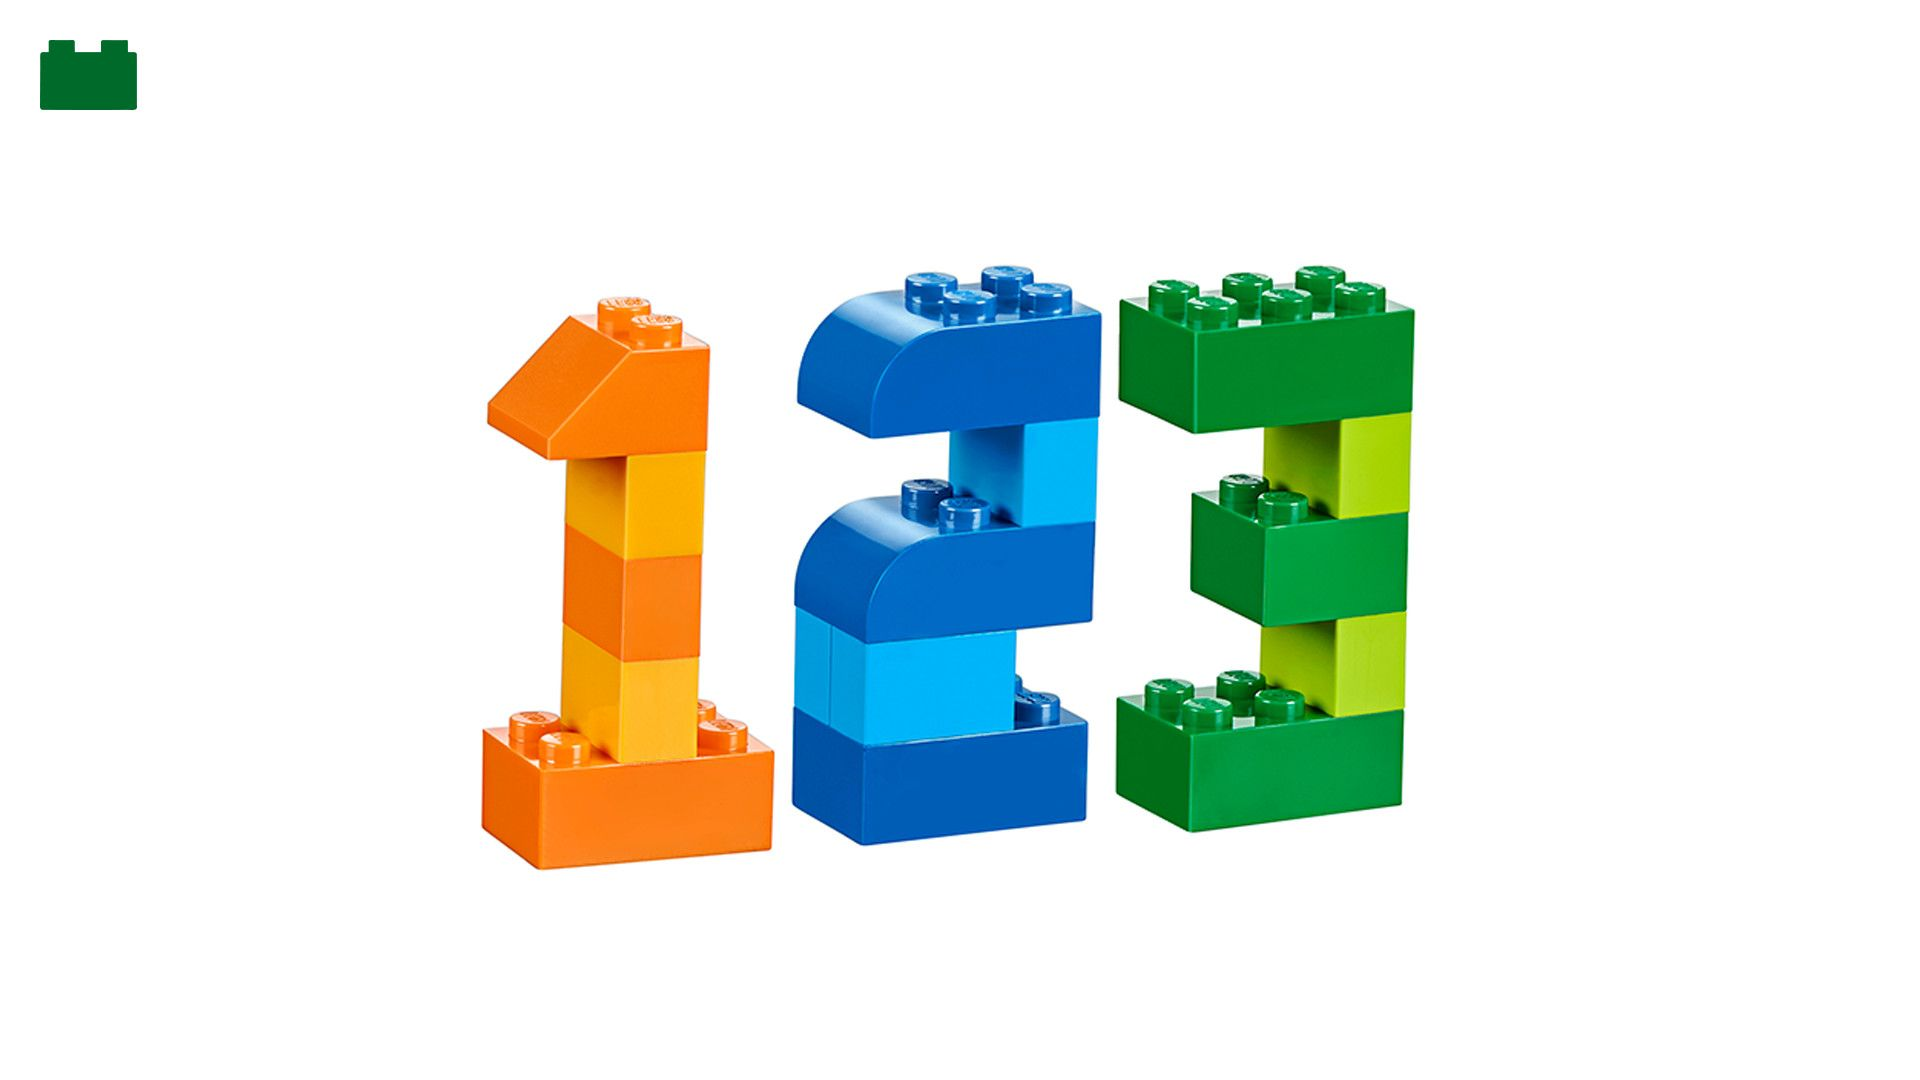 Creative Supplement 10693 | Classic | Buy online at the Official LEGO® Shop US | Lego creative ...